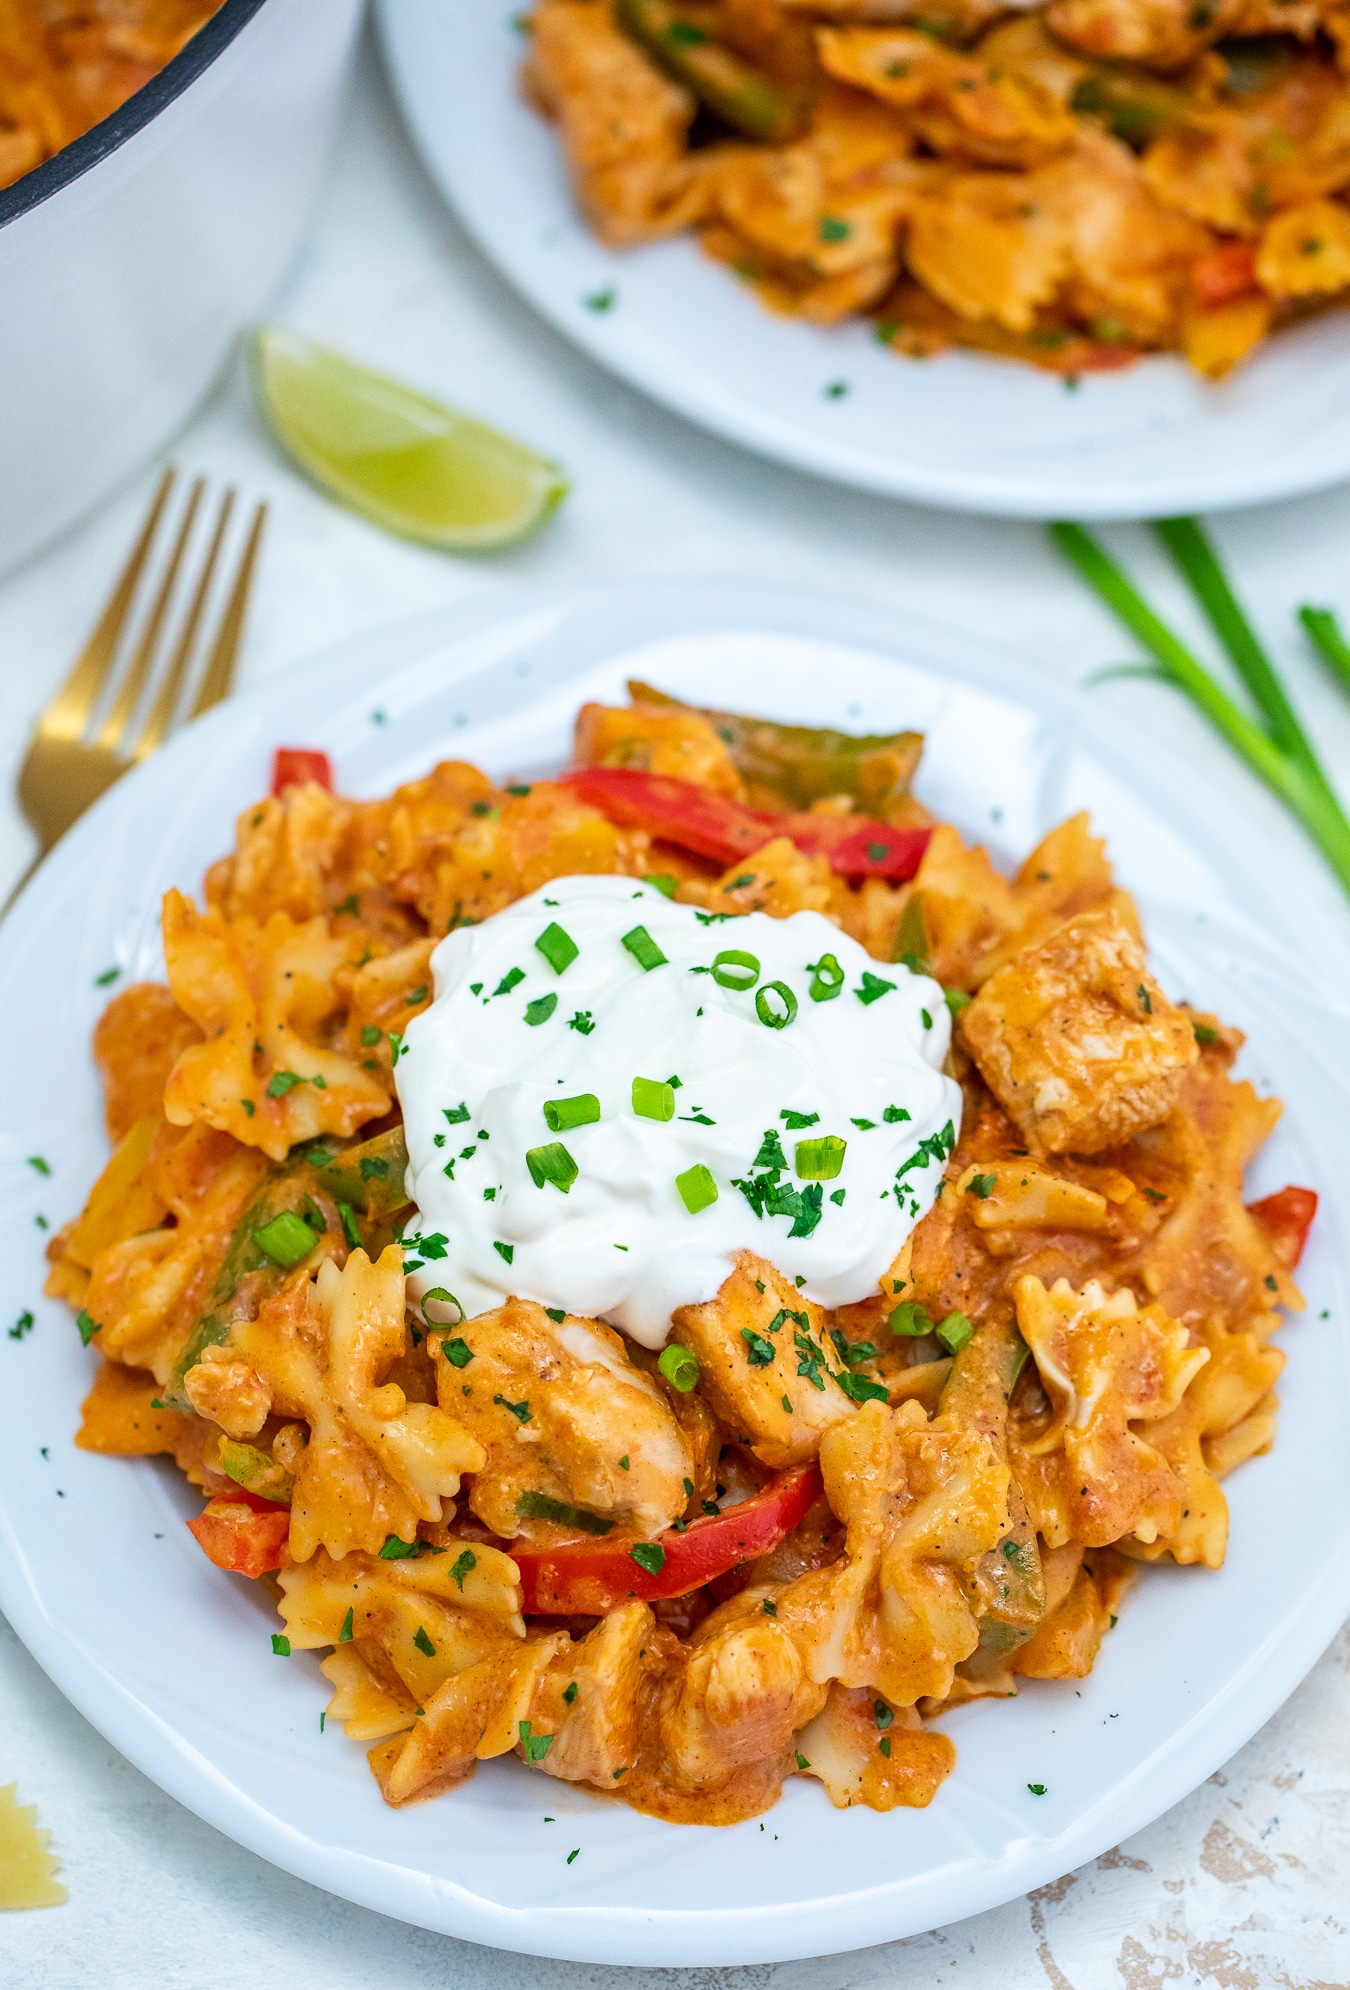 One Pot Chicken Fajita Pasta is a hearty and classic dish made with chicken, bell pepper, and pasta soaked in a creamy fajita sauce. #chickenrecipes #pastarecipes #onepotrecipes #30minutemeals #mexicanrecipes